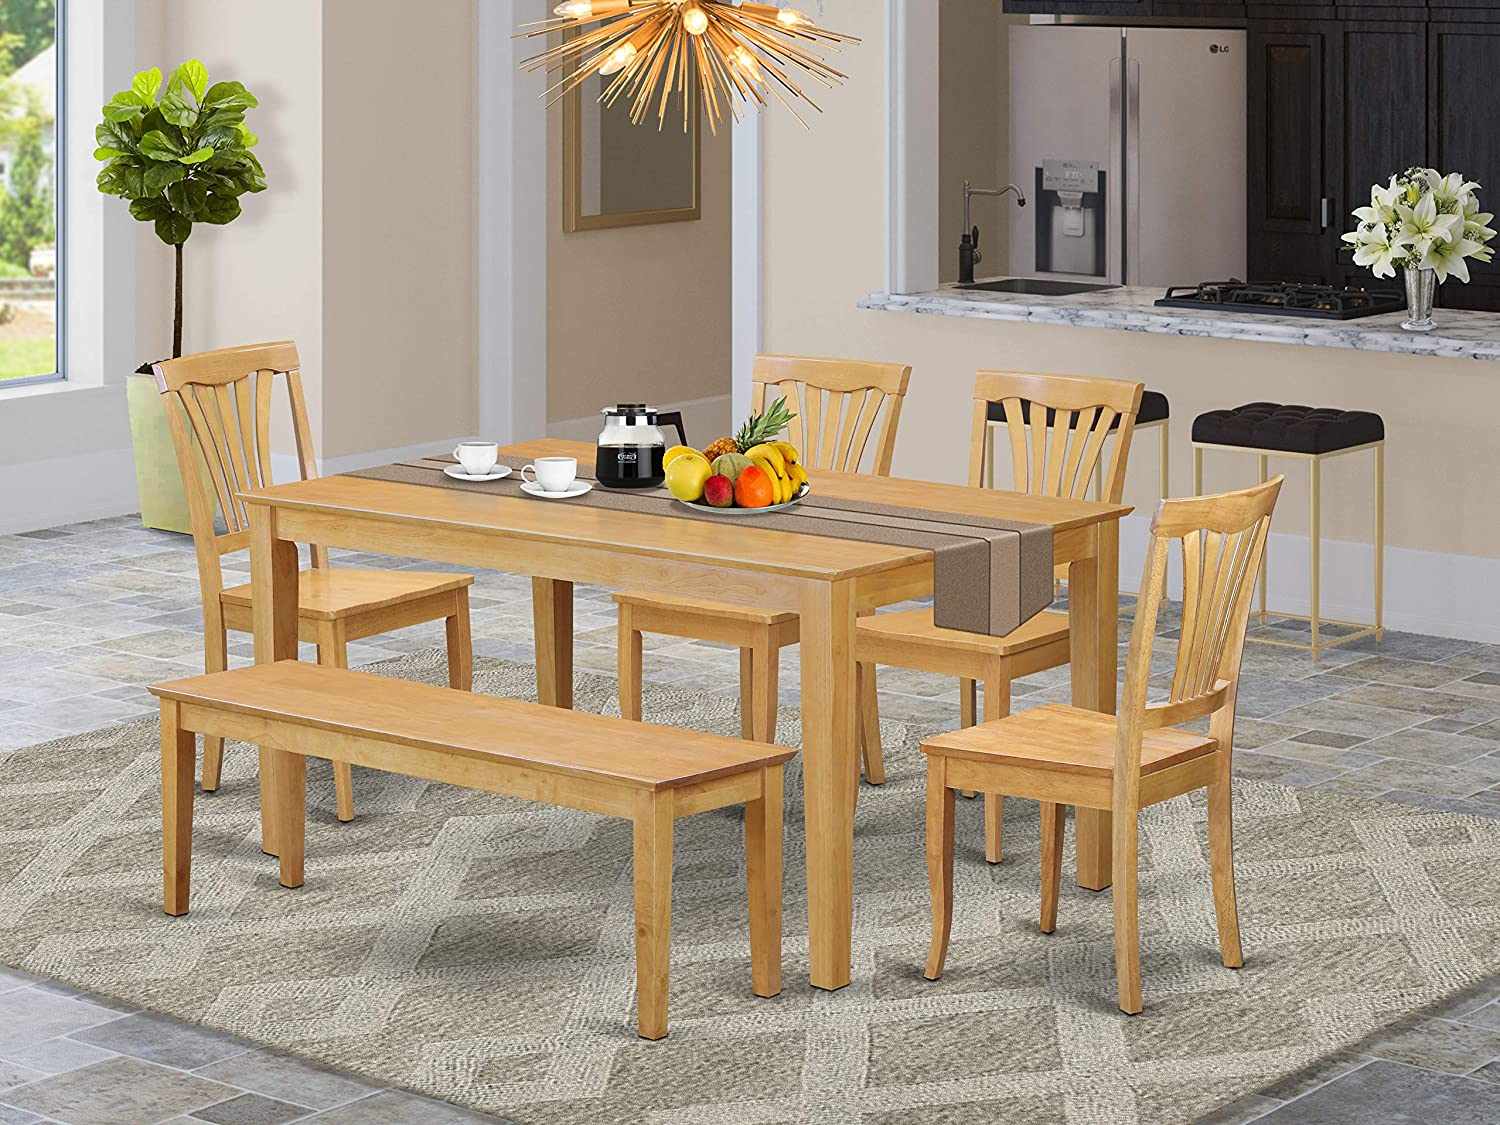 Amazon Com East West Furniture Small Kitchen Table Set 6 Pc Wooden Kitchen Chairs Seat Oak Finish Wood Dining Table And Bench Furniture Decor